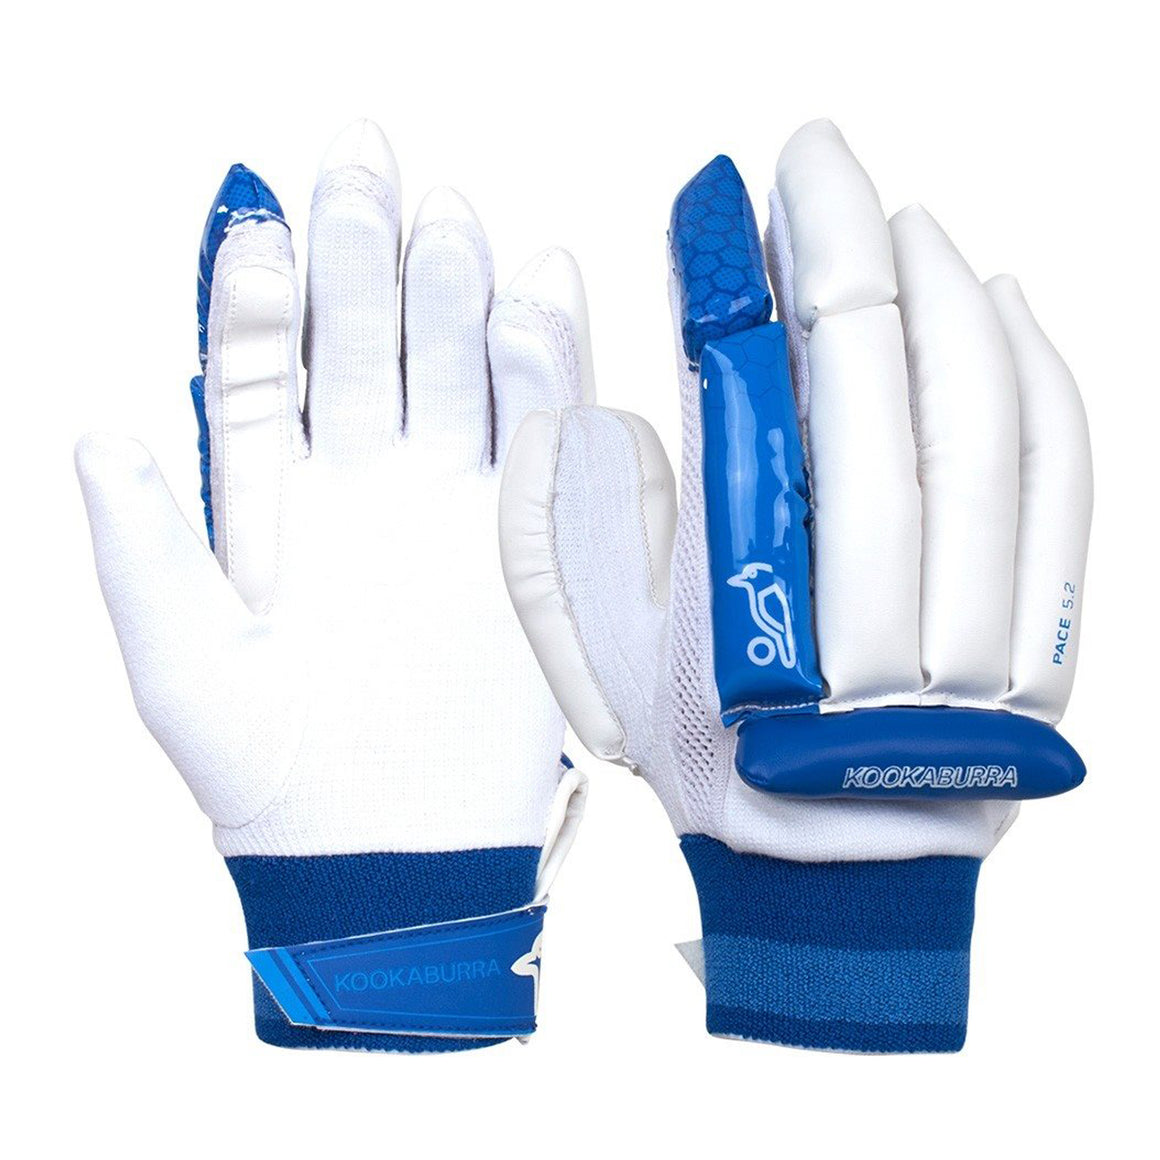 Pace 5.2 R/H Batting Gloves for Kids in White & Royal